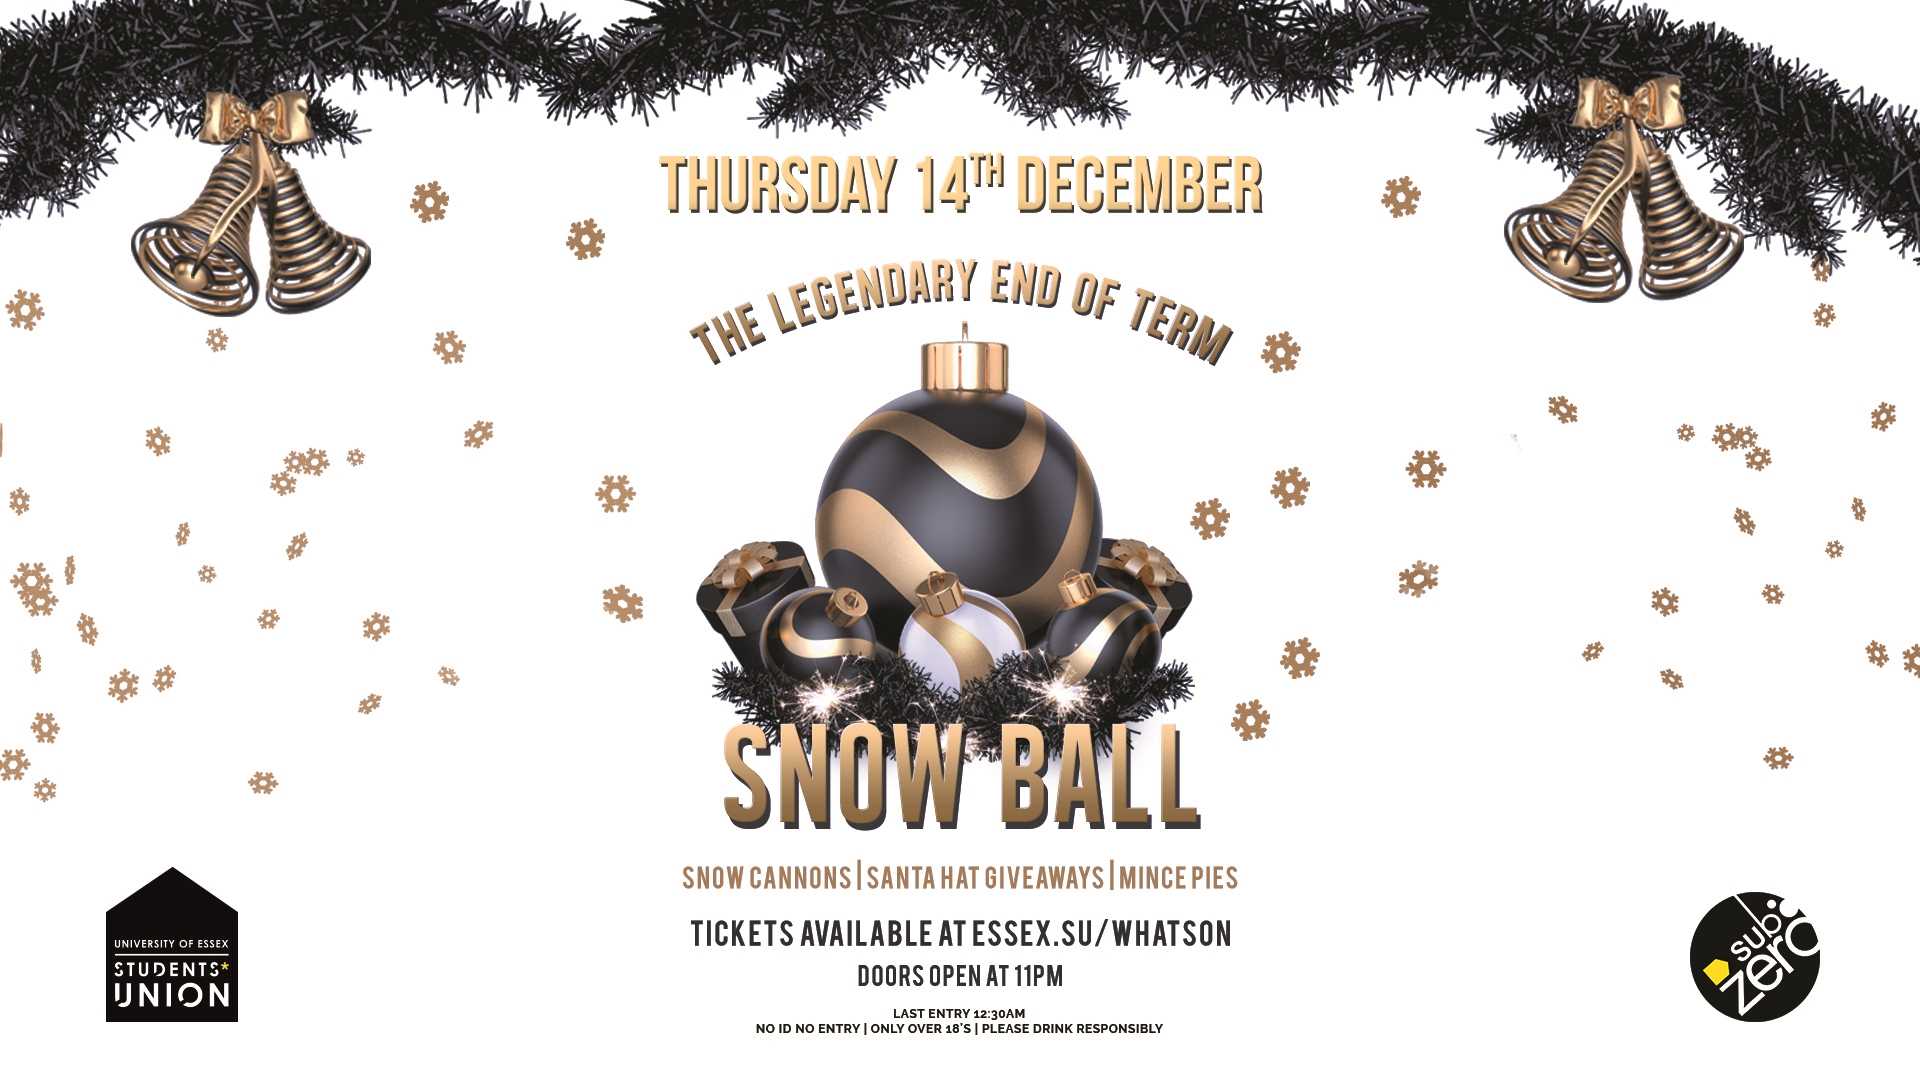 The Legendary End of Term Snow Ball - LIMITED TICKETS AVAILABLE ON THE DOOR